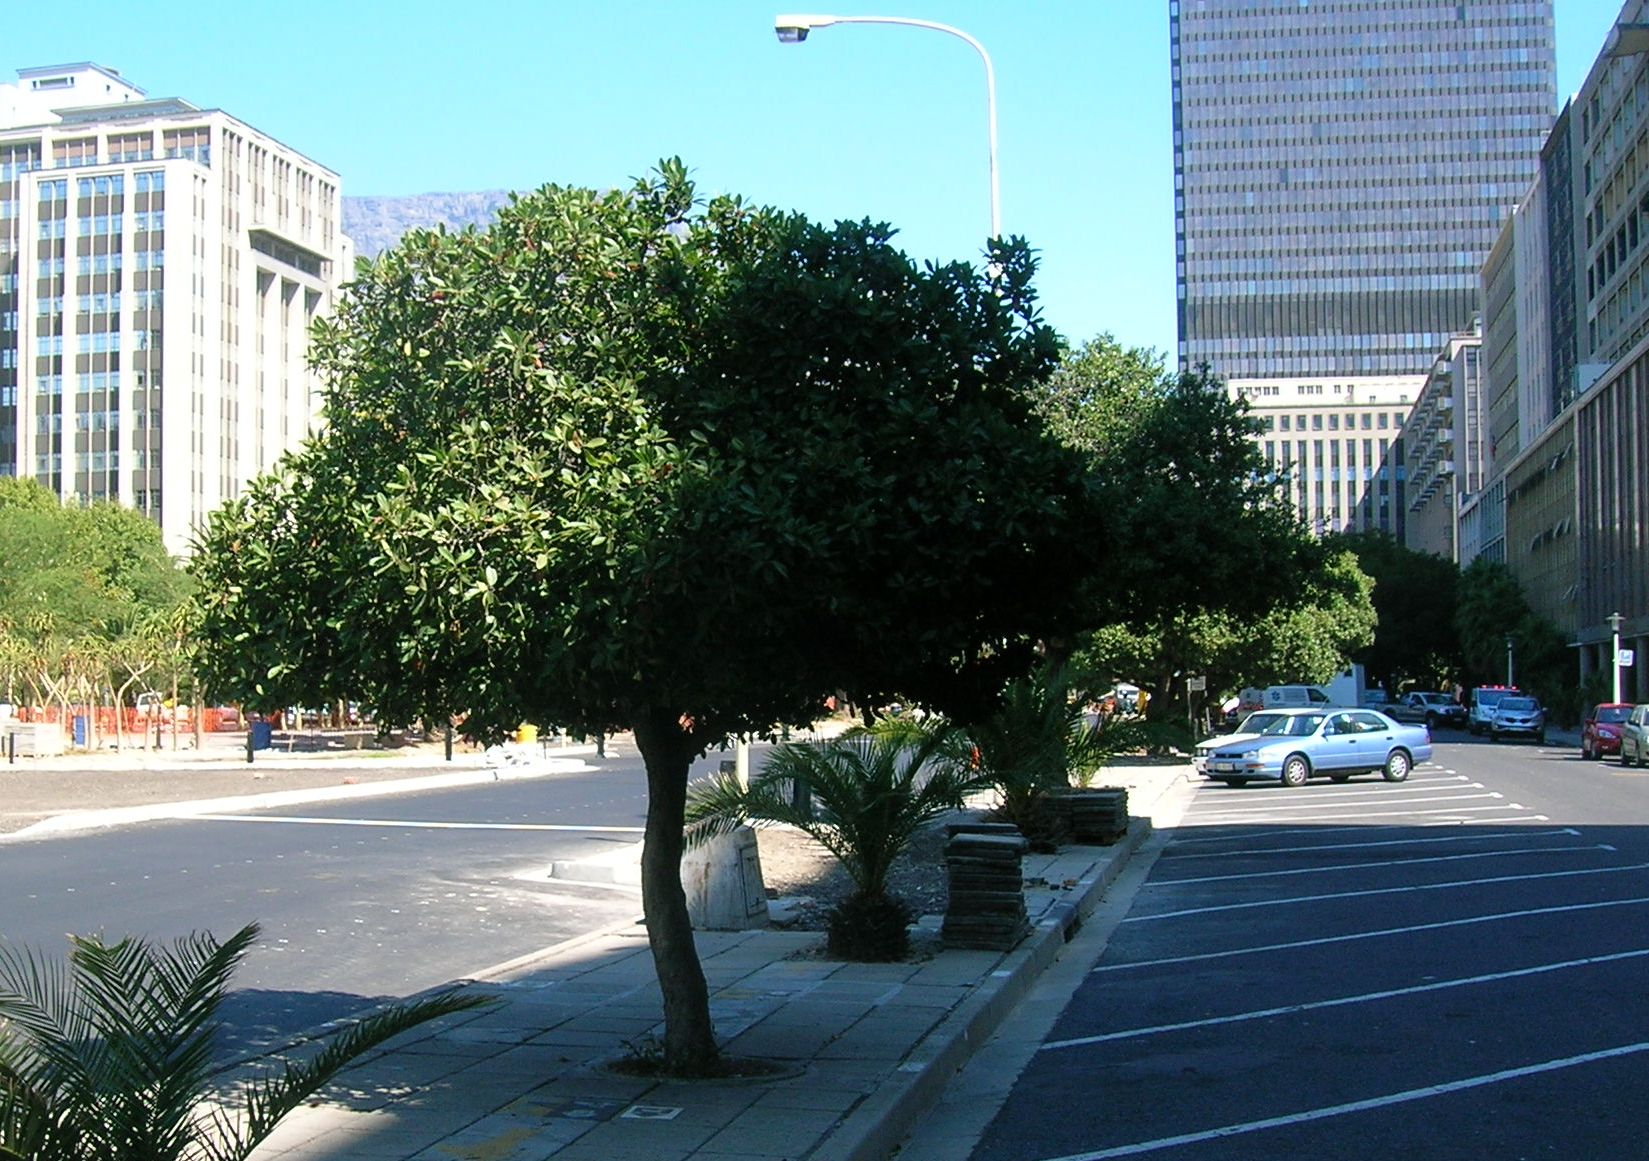 Fileyoung Milkwood Trees In Cape Town City Centre Sideroxylon Inerme  Jpg Wikimedia Commons